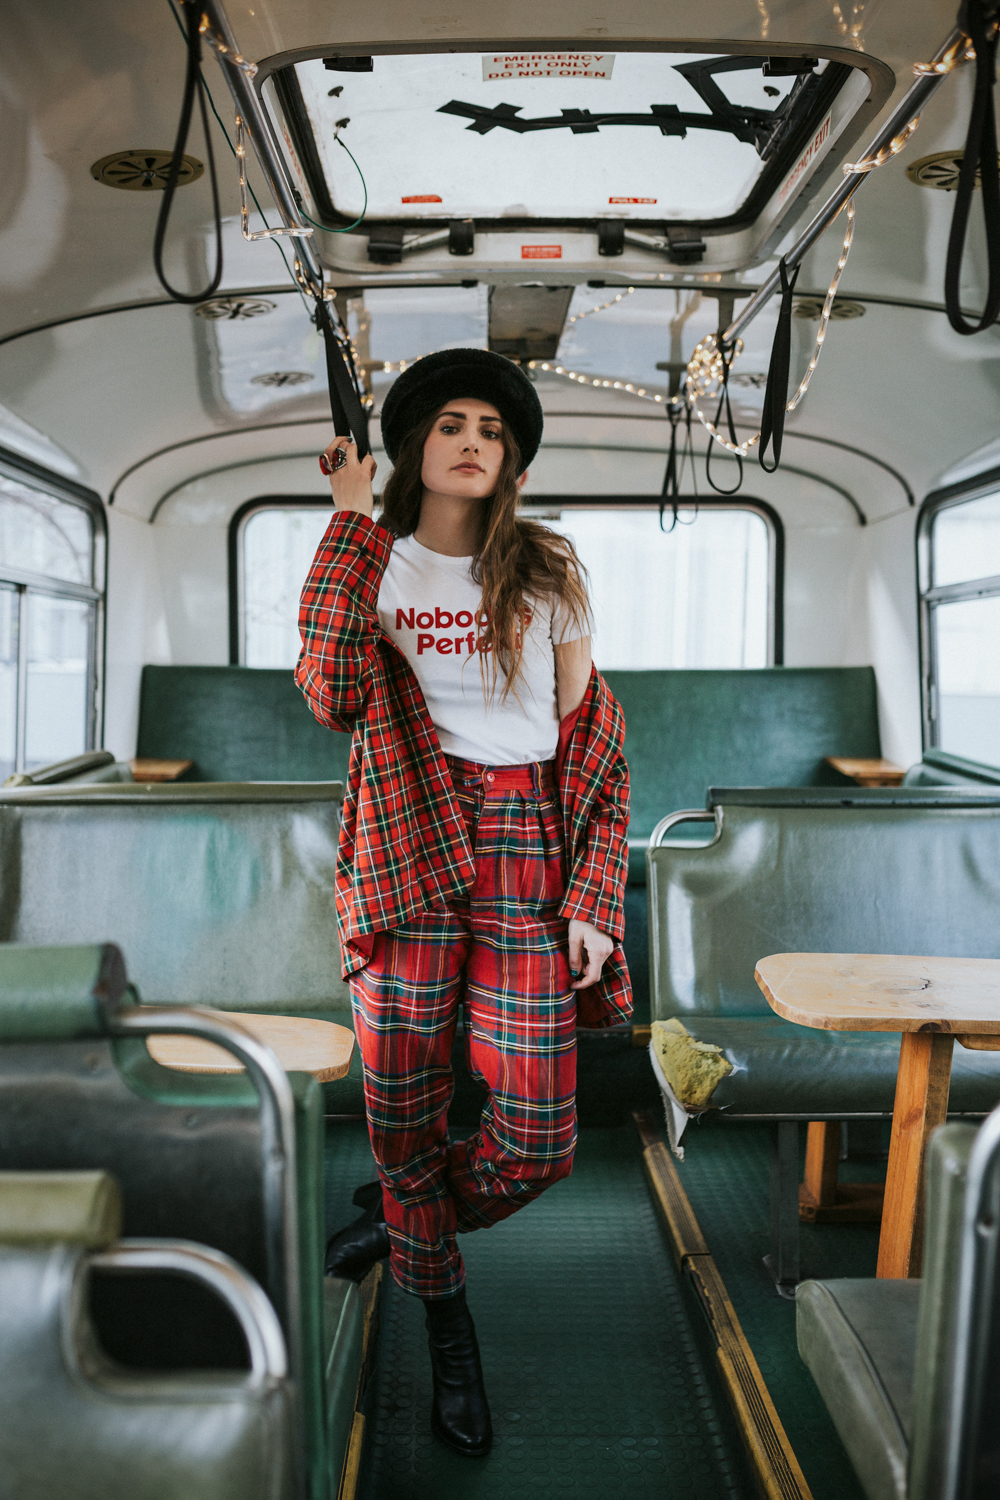 Model stands in bus for vintage fashion photo shoot.